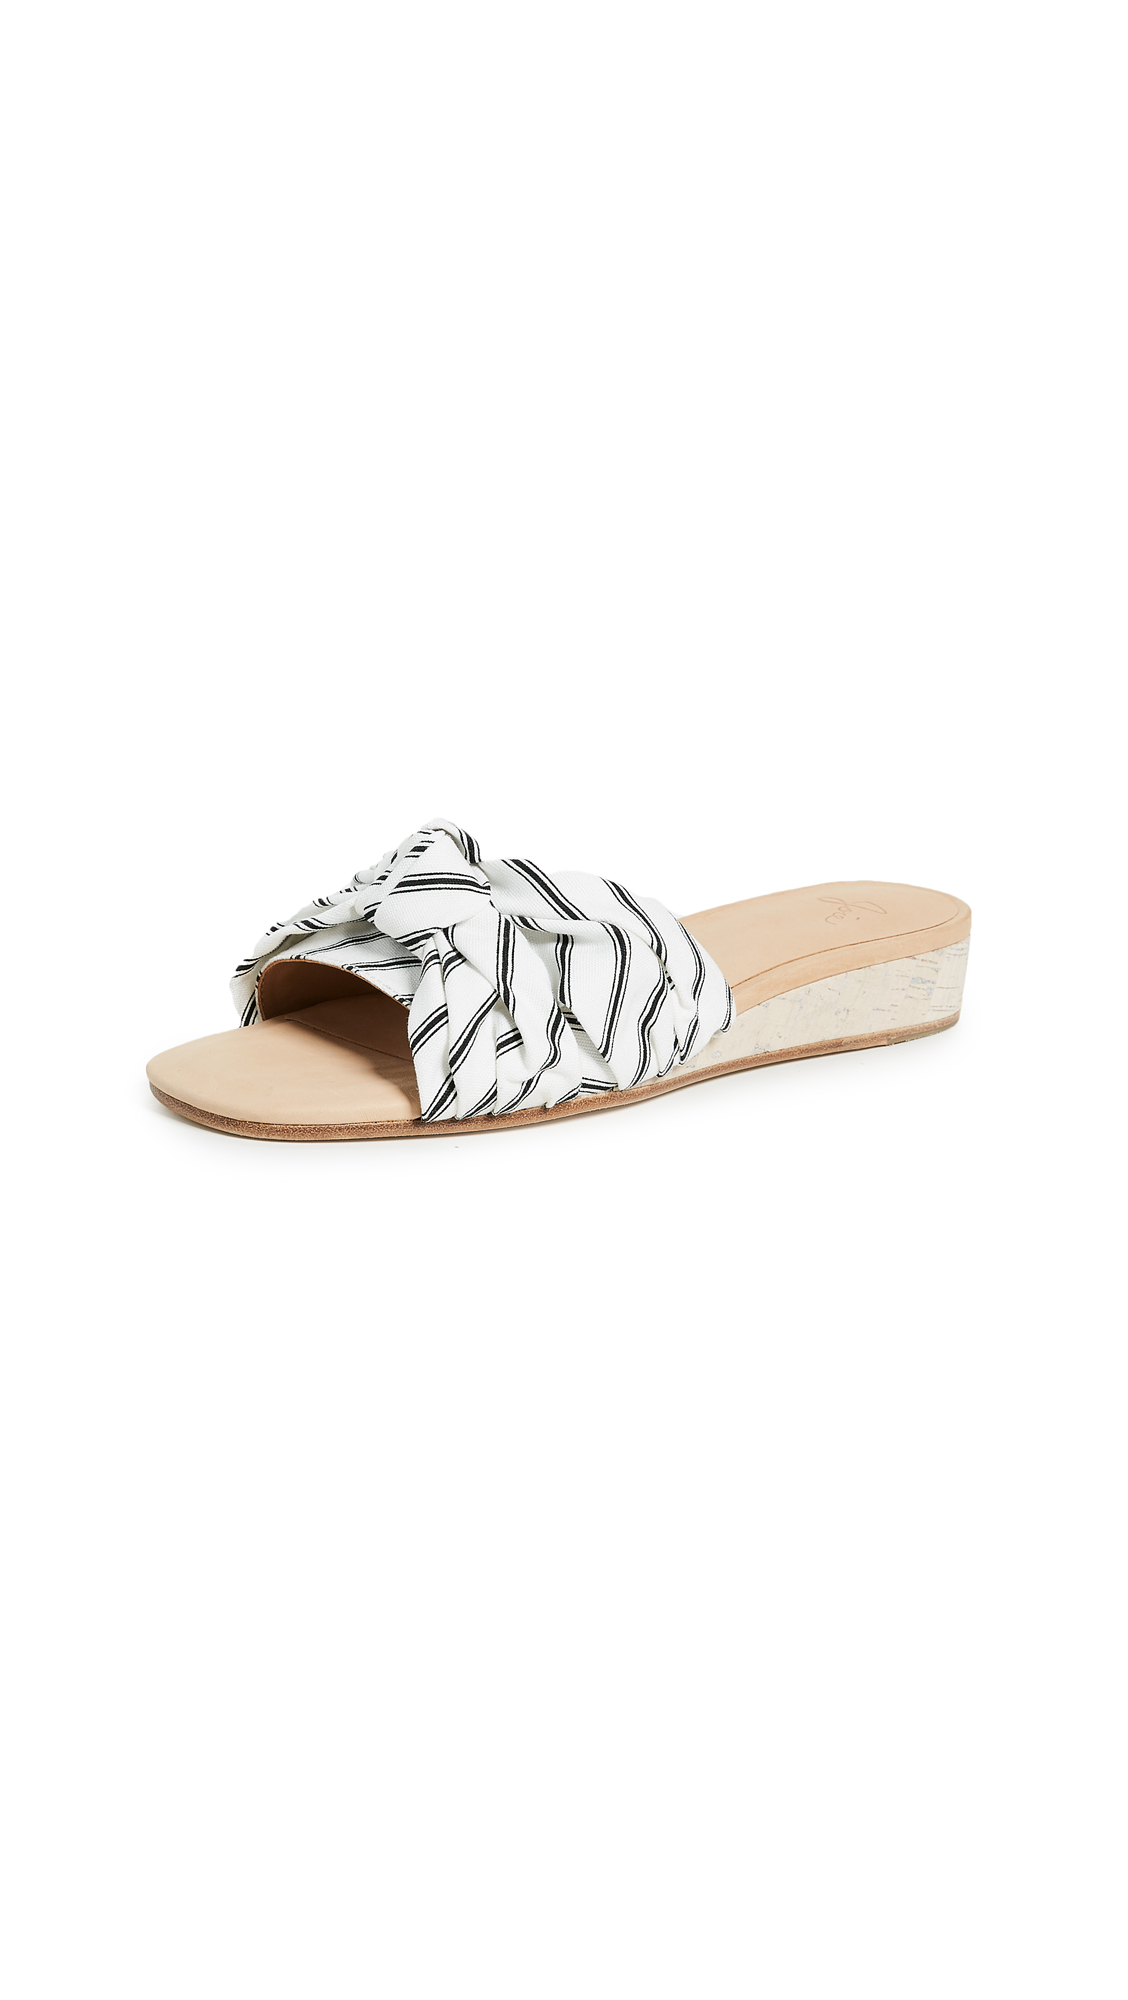 Joie Fay Knotted Slides - Porcelain/Caviar